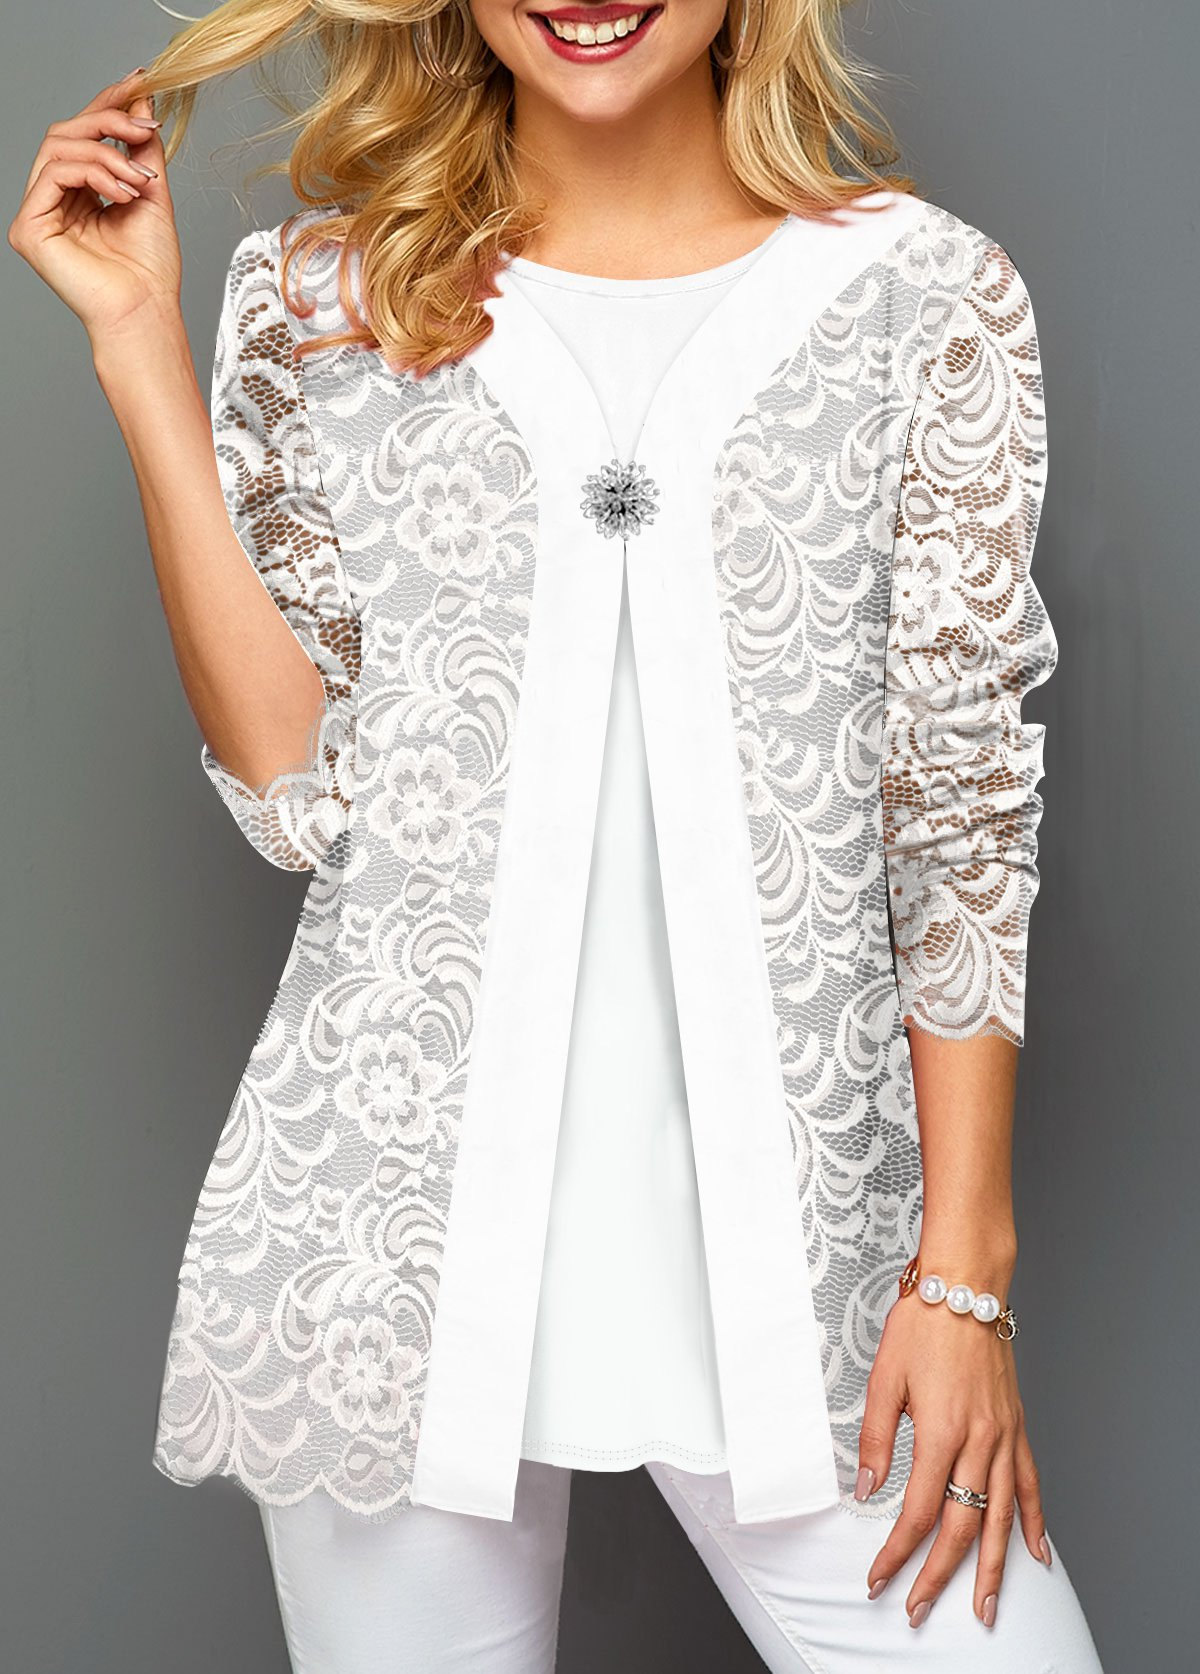 Faux Two Piece Decorated Button White Lace T Shirt